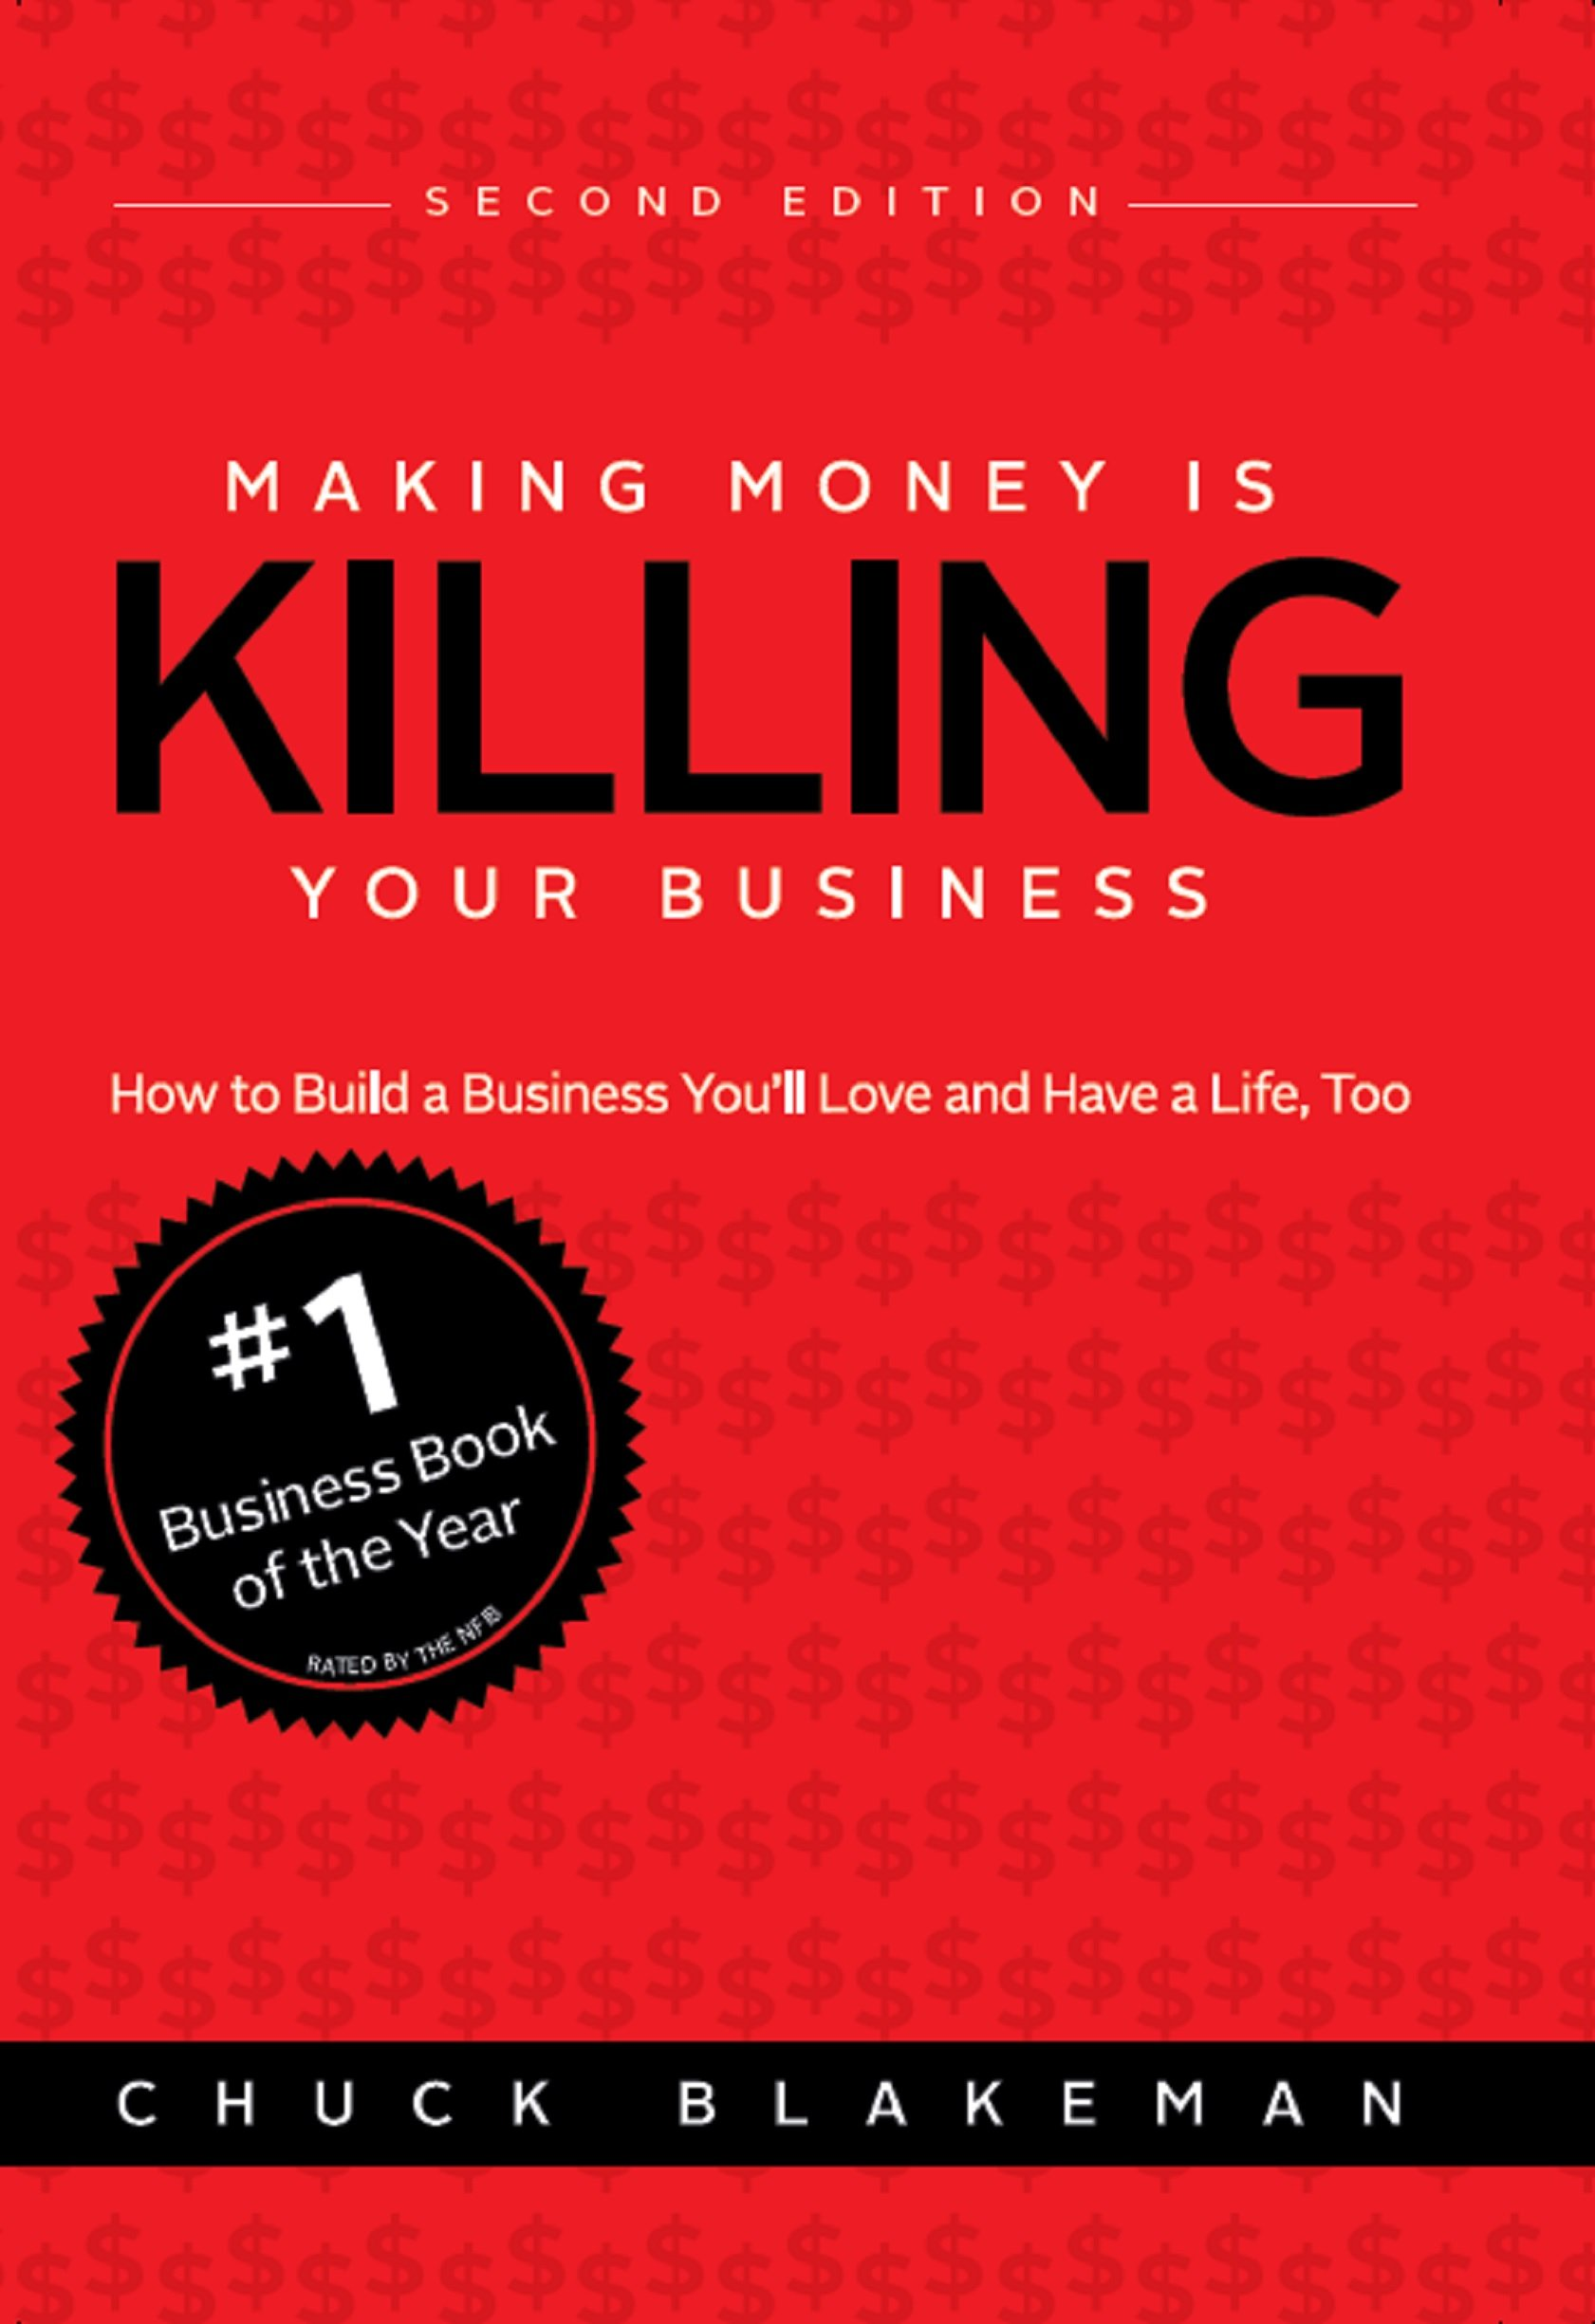 Making Money Is Killing Your Business: Second Edition: How to Build a Business You'll Love and Have a Life, Too